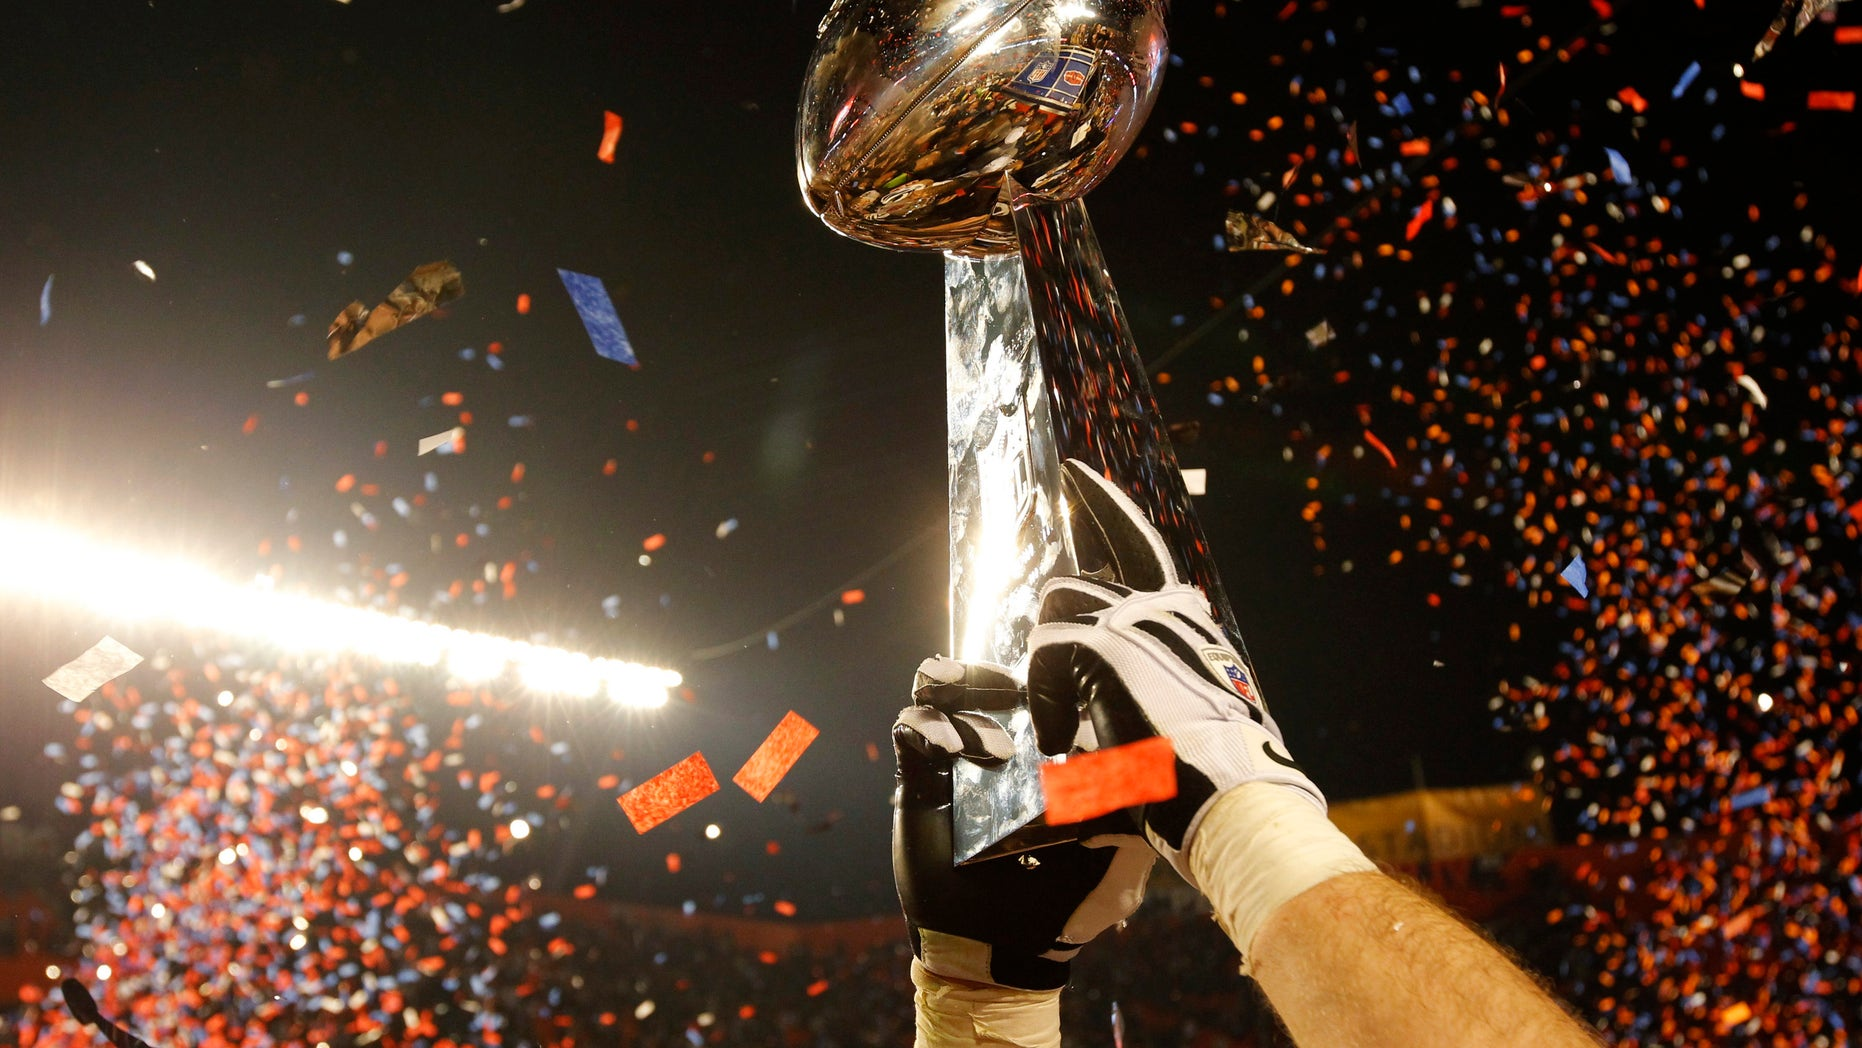 The Vince Lombardi Trophy is lifted into the air after the New Orleans Saints defeated the Indianapolis Colts in the NFL's Super Bowl XLIV football game in Miami, Florida, February 7, 2010.     REUTERS/Mike Segar (UNITED STATES) - RTR29YJ0